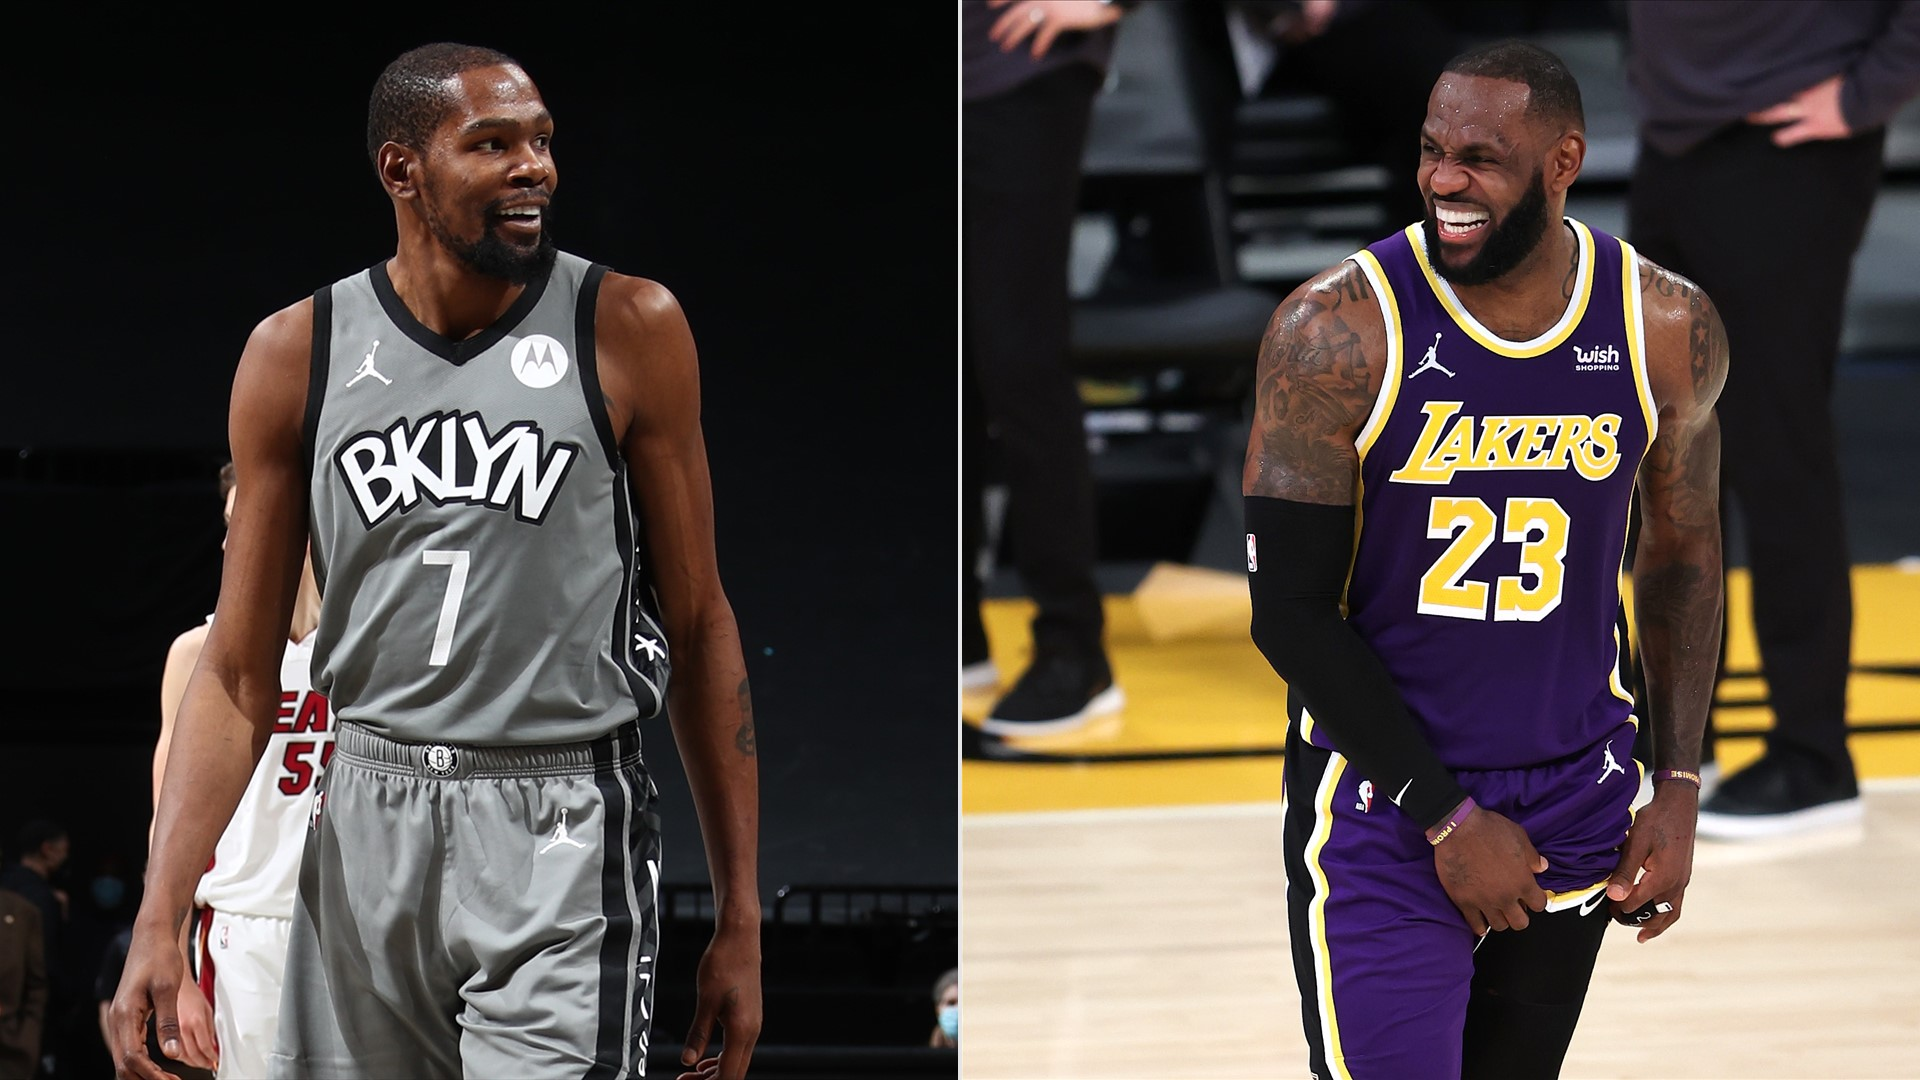 NBA All-Star Game 2021: Takeaways from the first fan vote returns - NBA IN